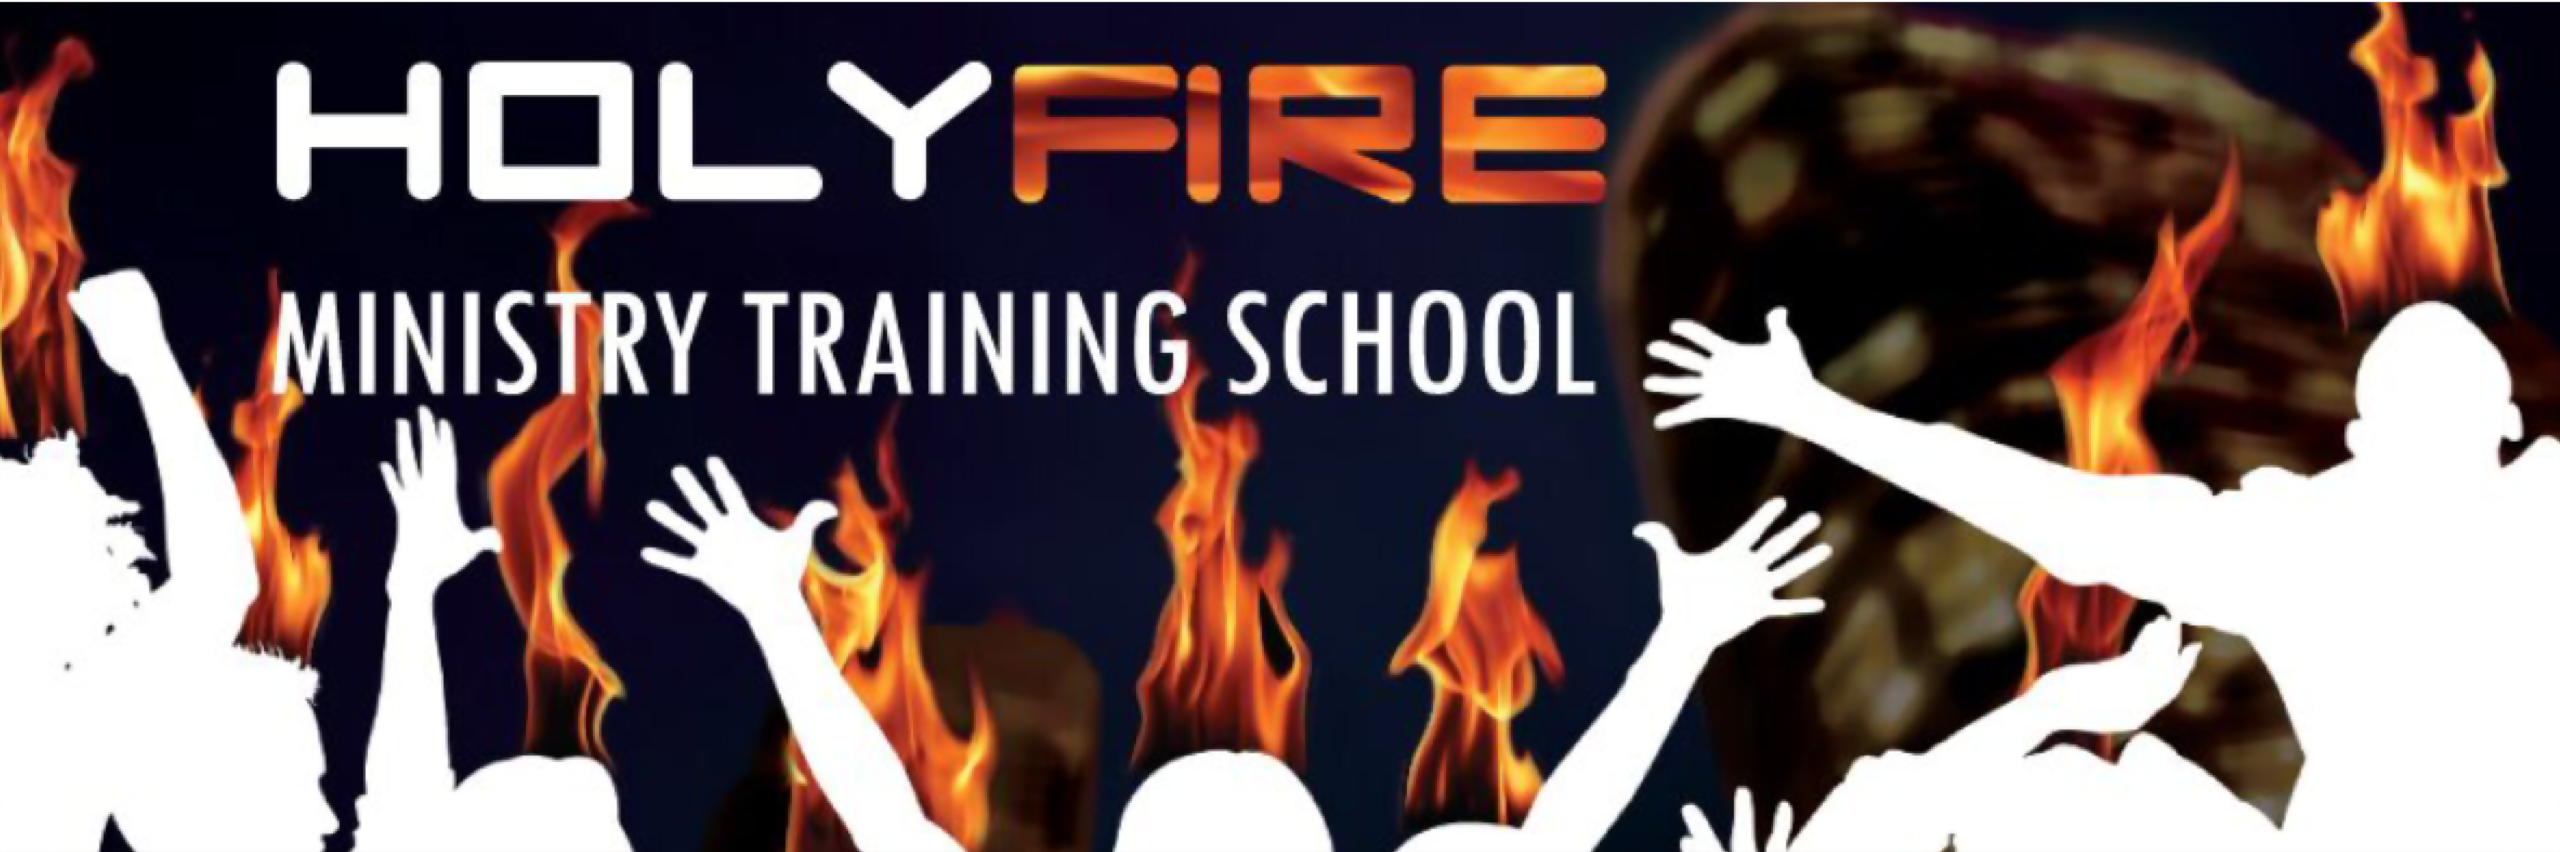 Holy Fire Ministry Training School